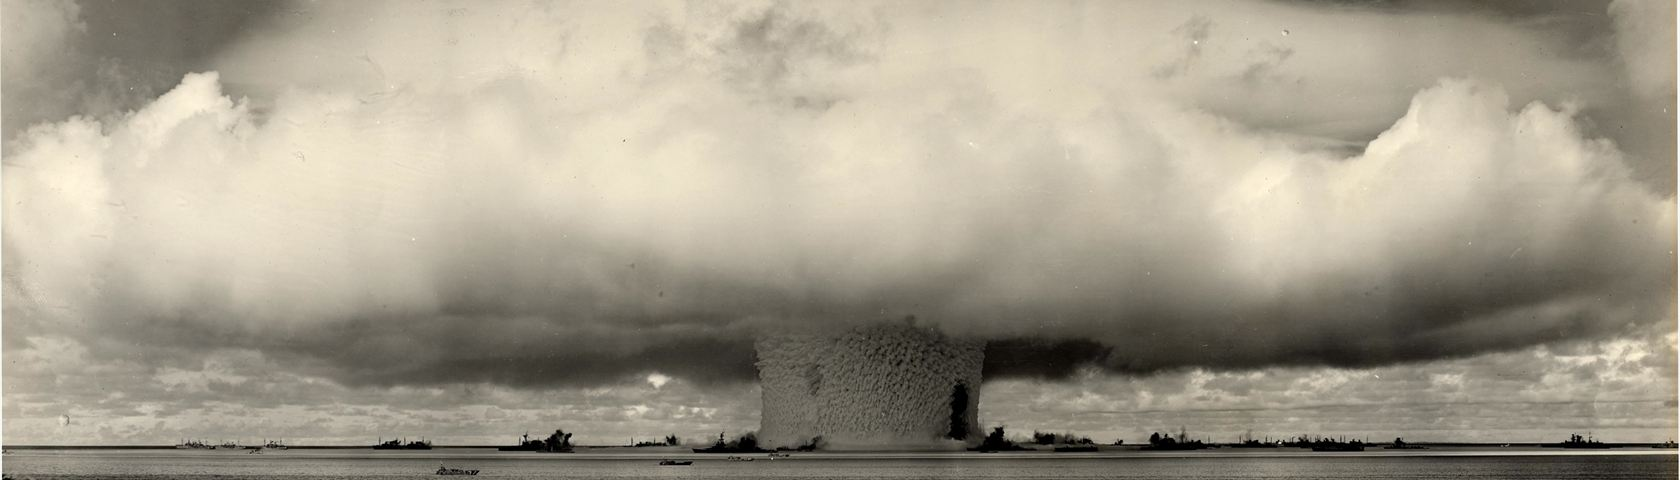 Mushroom Cloud Images Wallpaperfusion By Binary